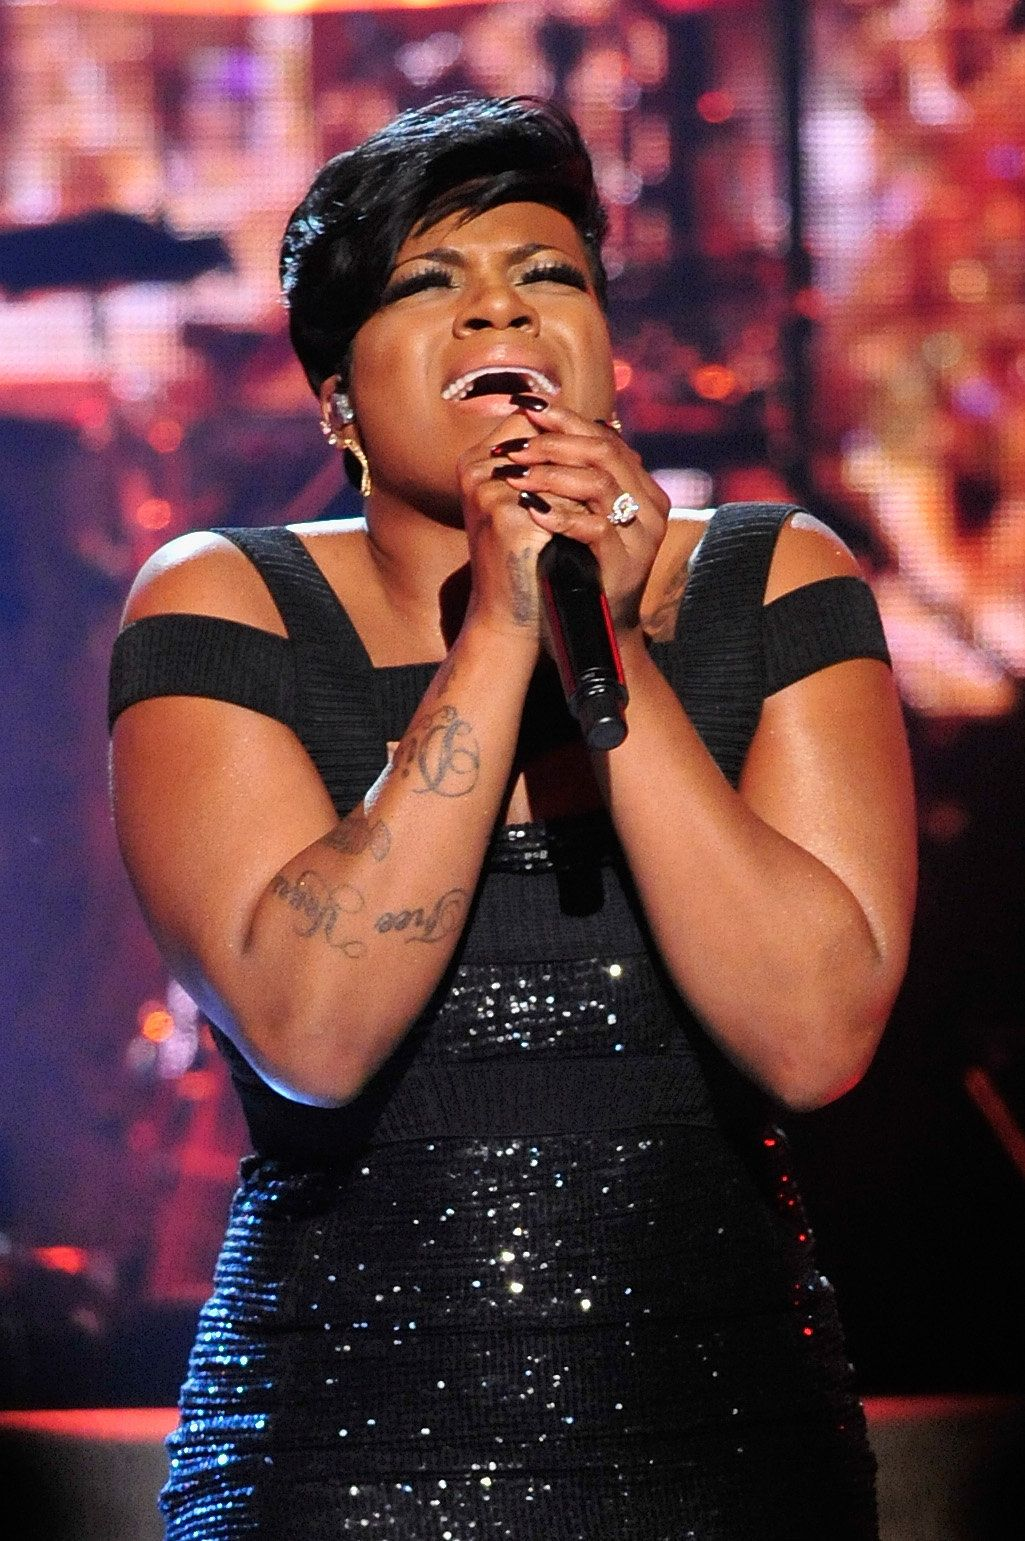 WASHINGTON, DC - MARCH 05:  Recording artist Fantasia Barrino performs on stage during the BET Honors 2016 Show at Warner Theatre on March 5, 2016 in Washington, DC.  (Photo by Kris Connor/BET/Getty Images for BET)